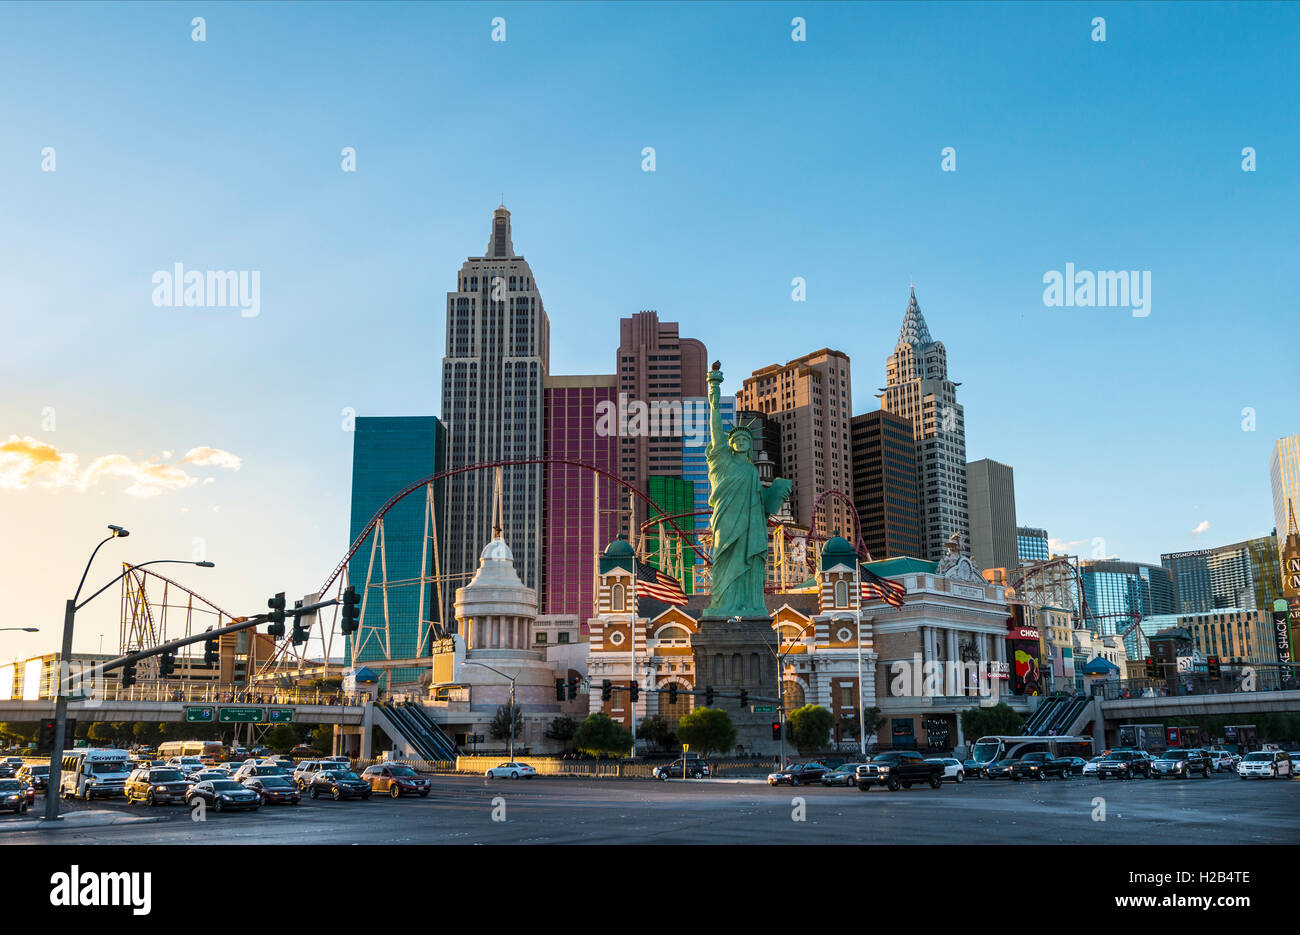 New York New York Hotel and Casino, Las Vegas, Nevada, USA Photo Stock